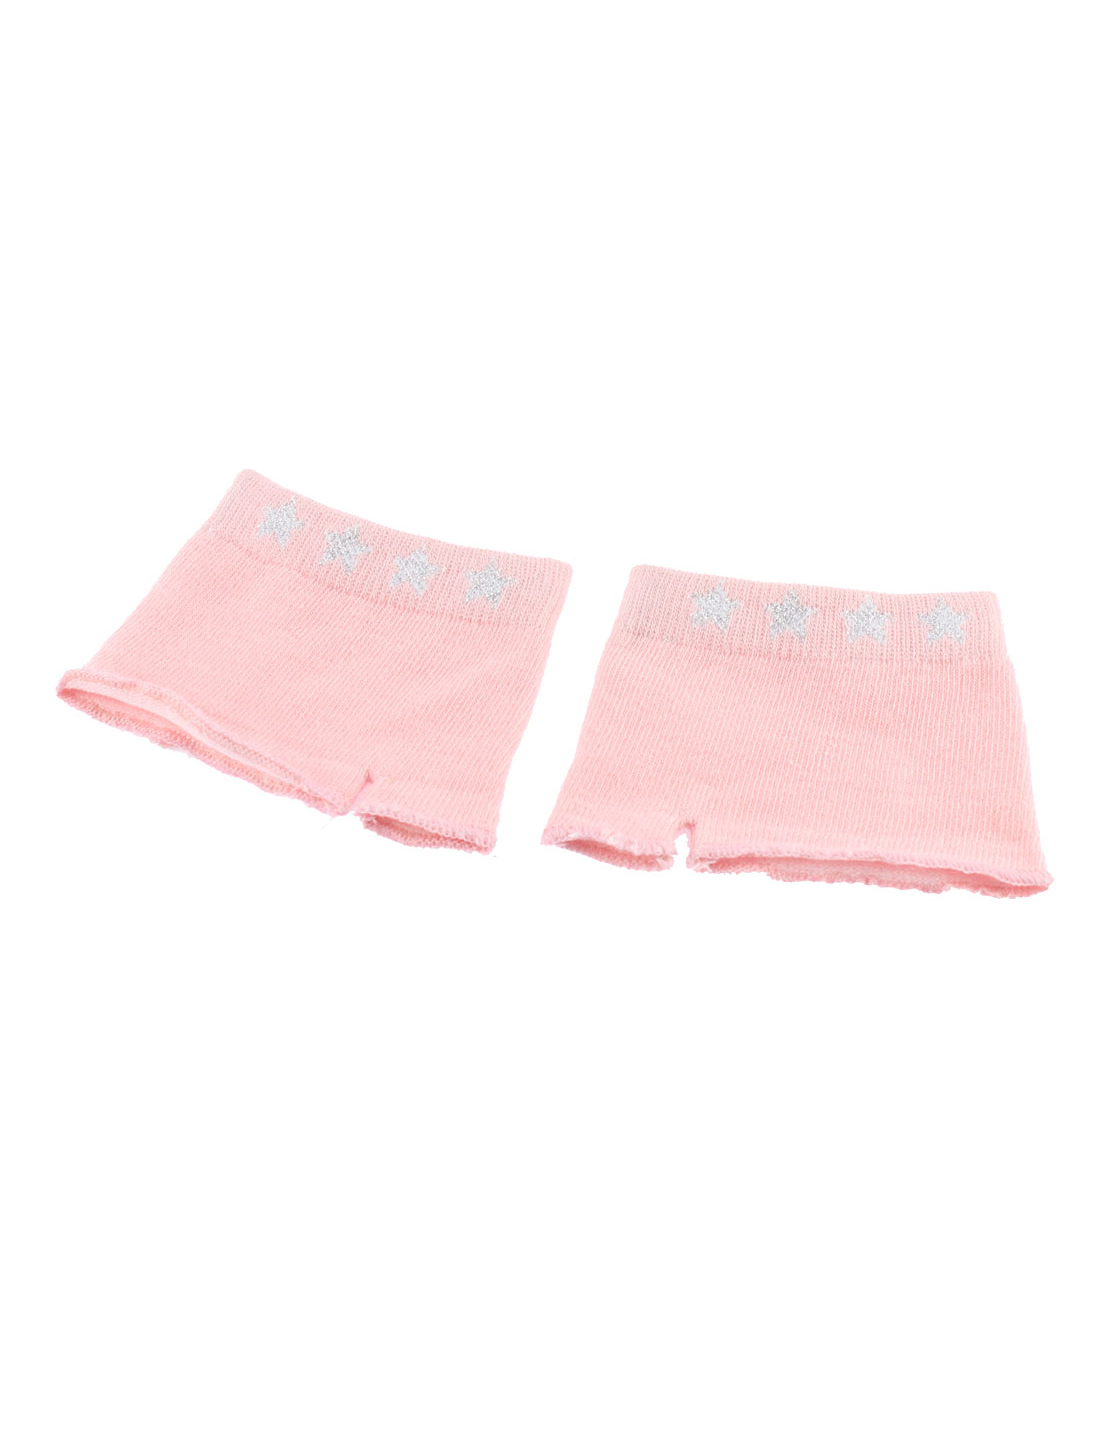 Female Summer Acrylic Non-slip Invisible Half Palm Open-toed Socks Light Pink Pair